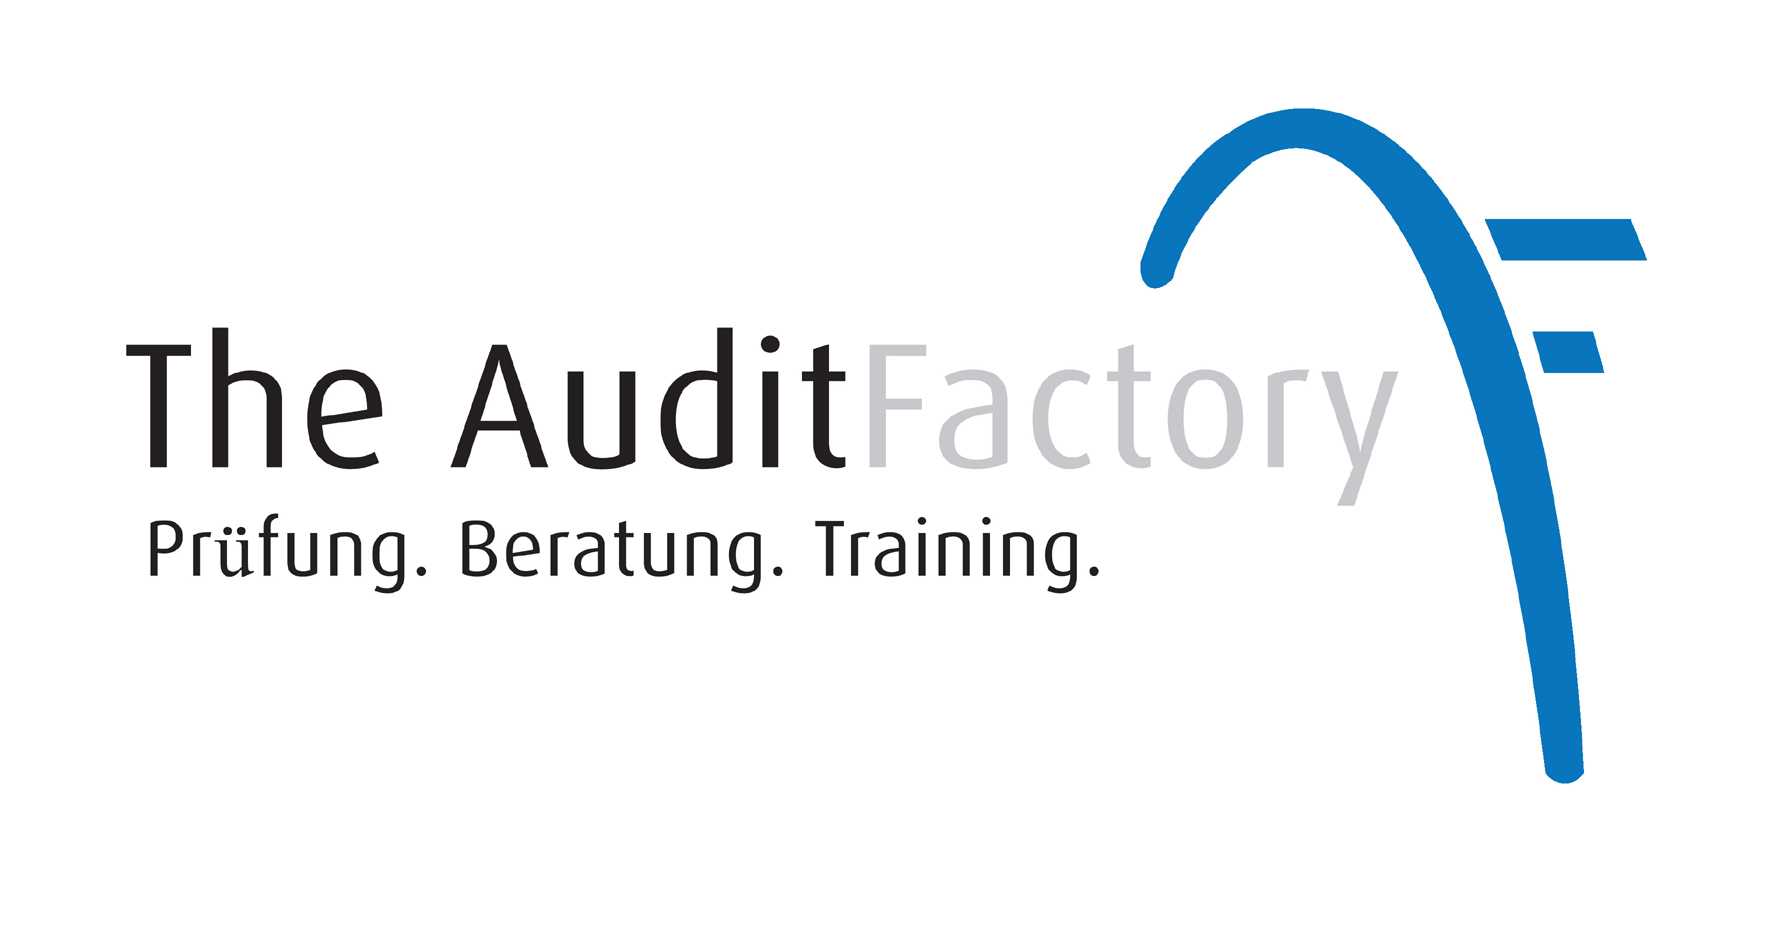 The AuditFactory